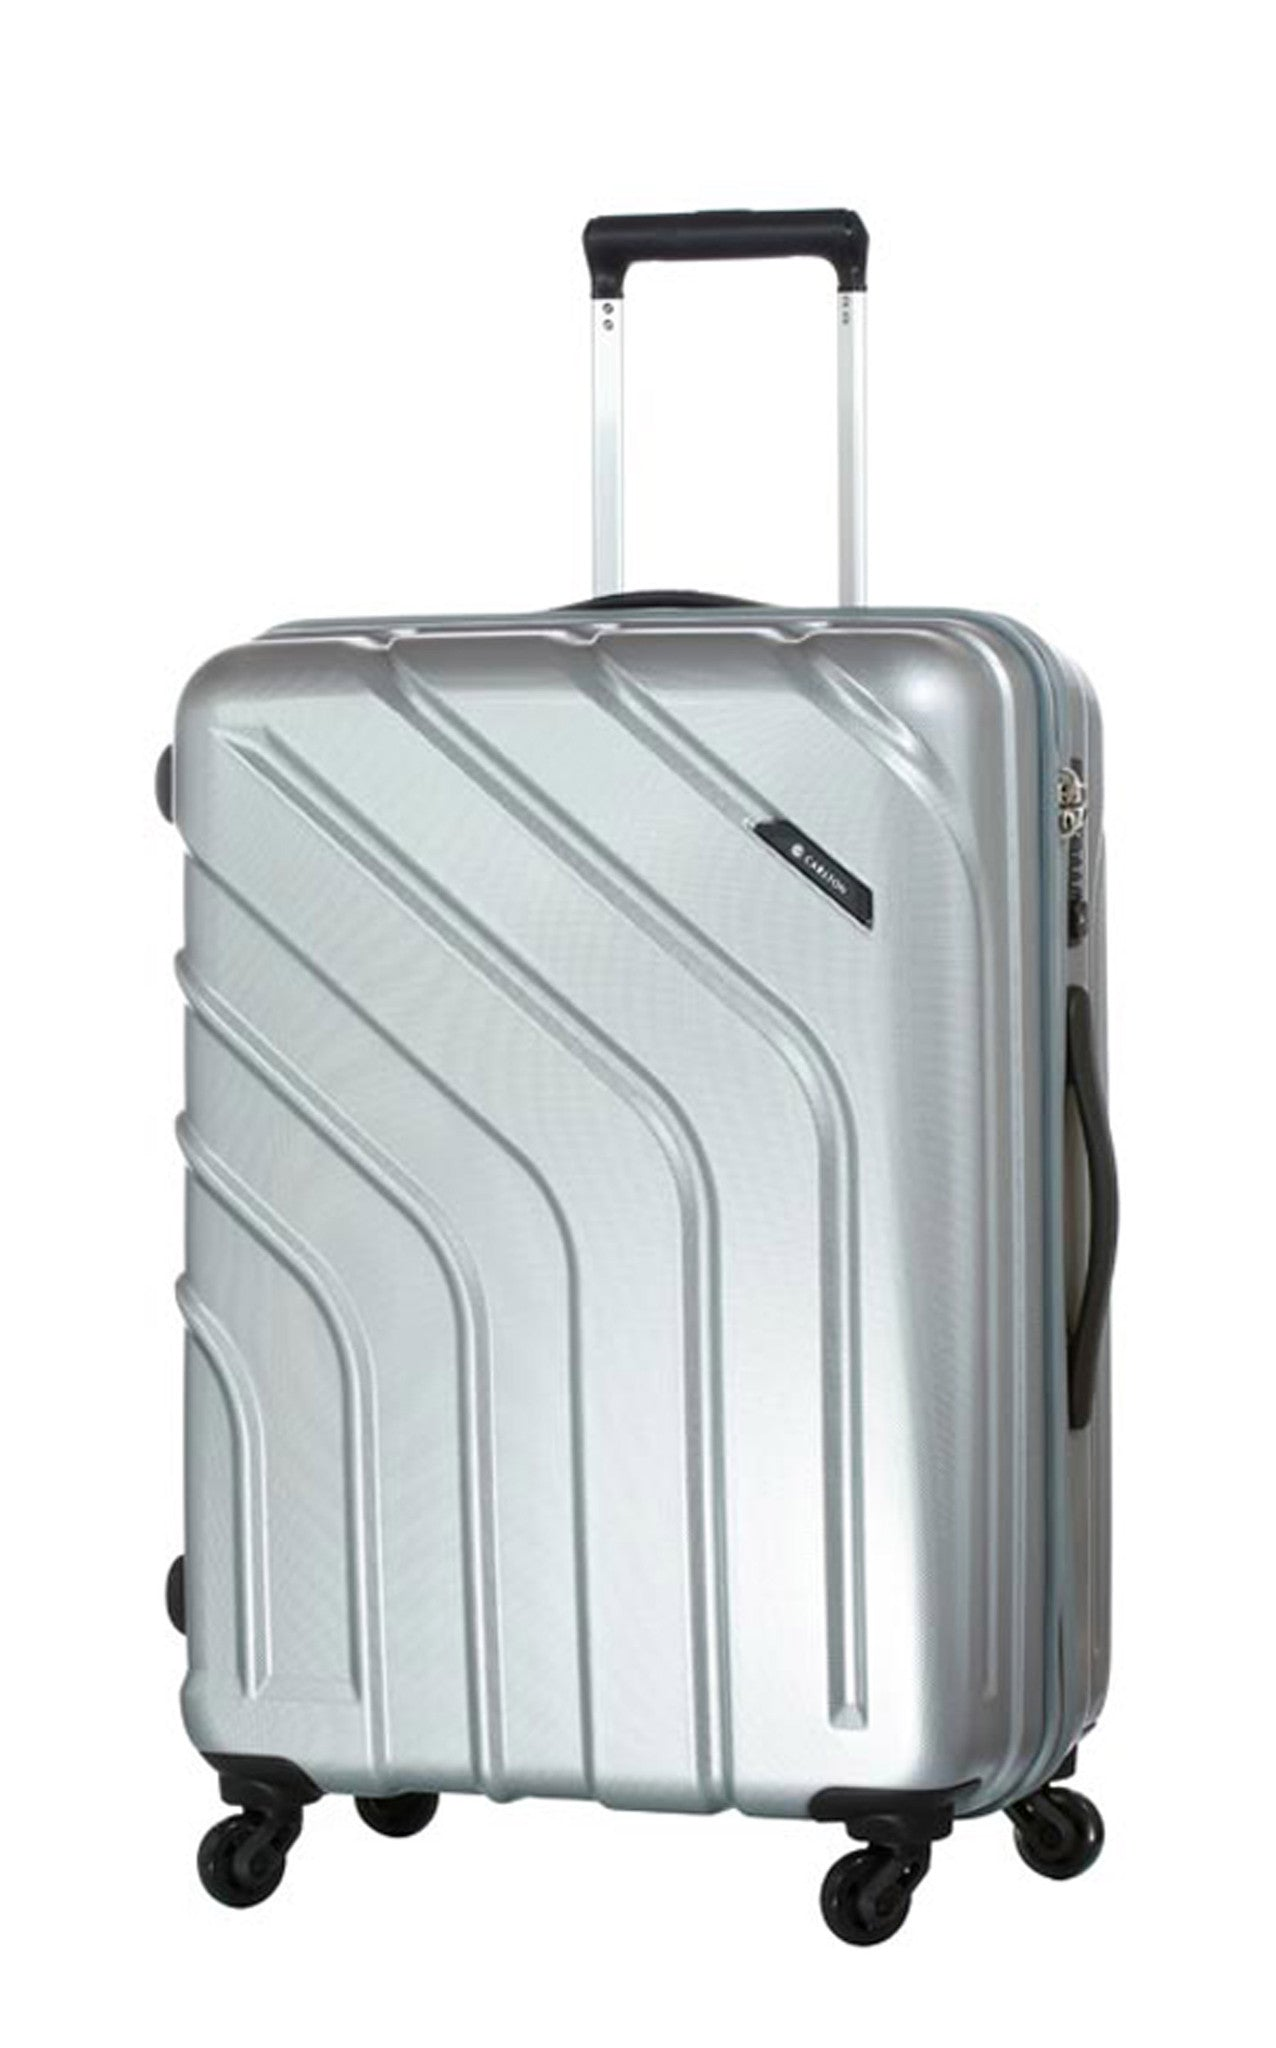 Carlton Stellar Luggage 68cm Trolley Case